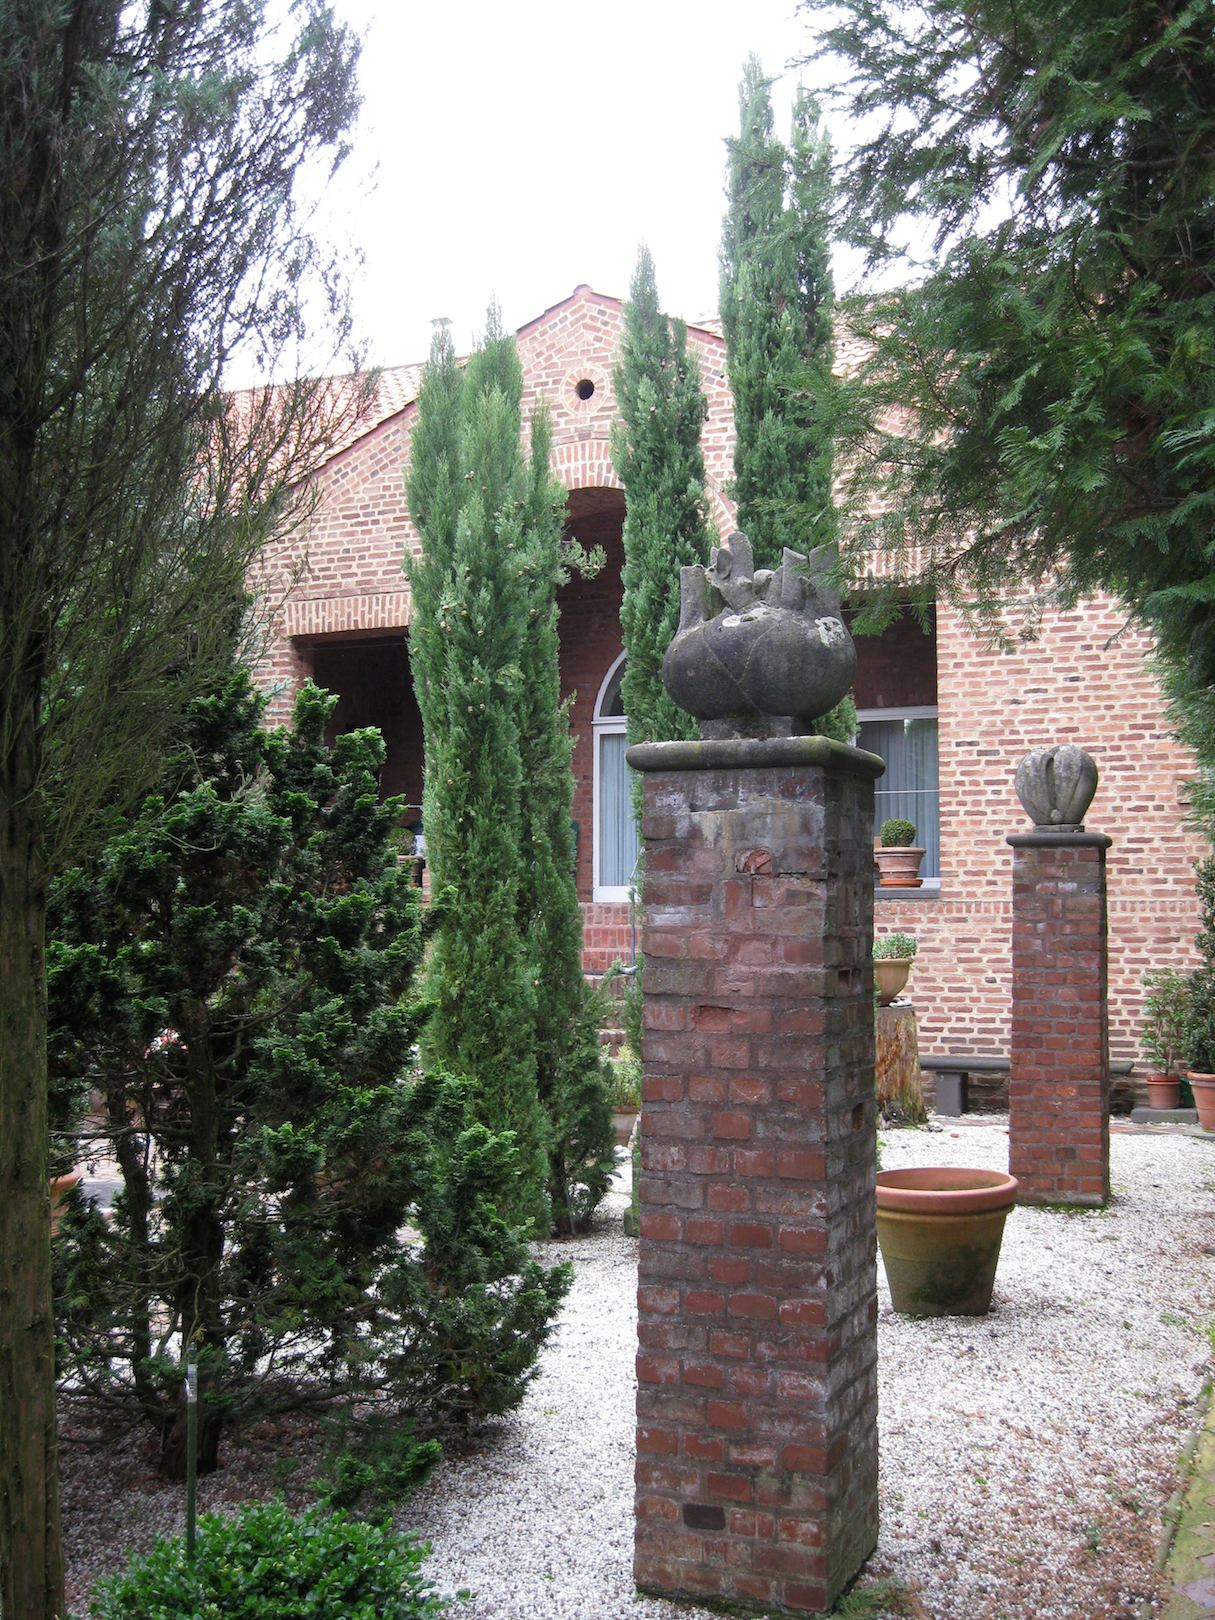 ... Brick Columns Are Topped With Concrete Vegetable Sculptures (fennel,  Eggplant And Capsicum) By